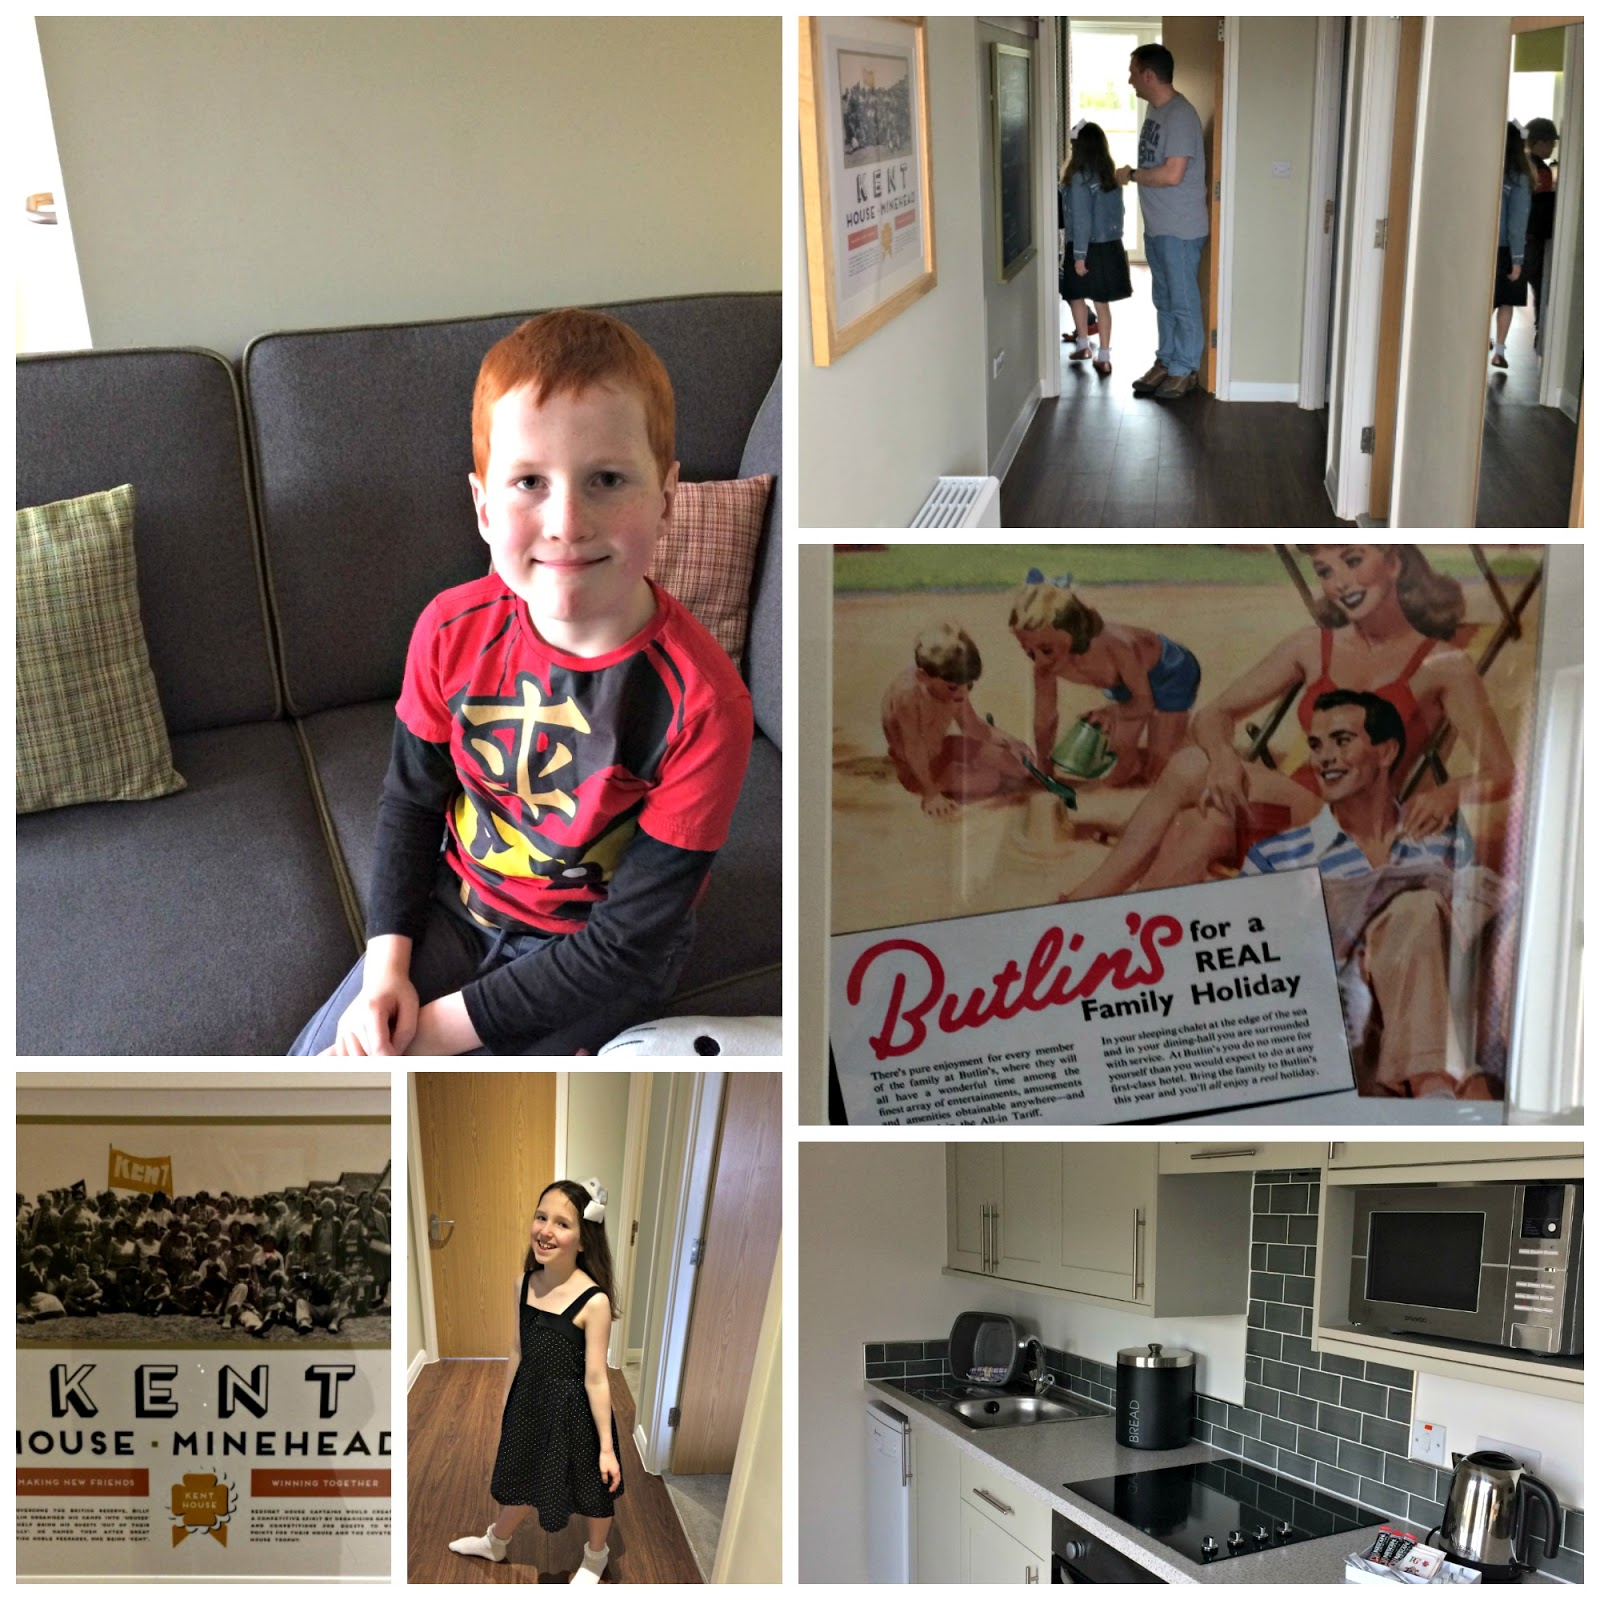 Kitchen and retro detailing - Lakeview chalet, Butlins Minehead